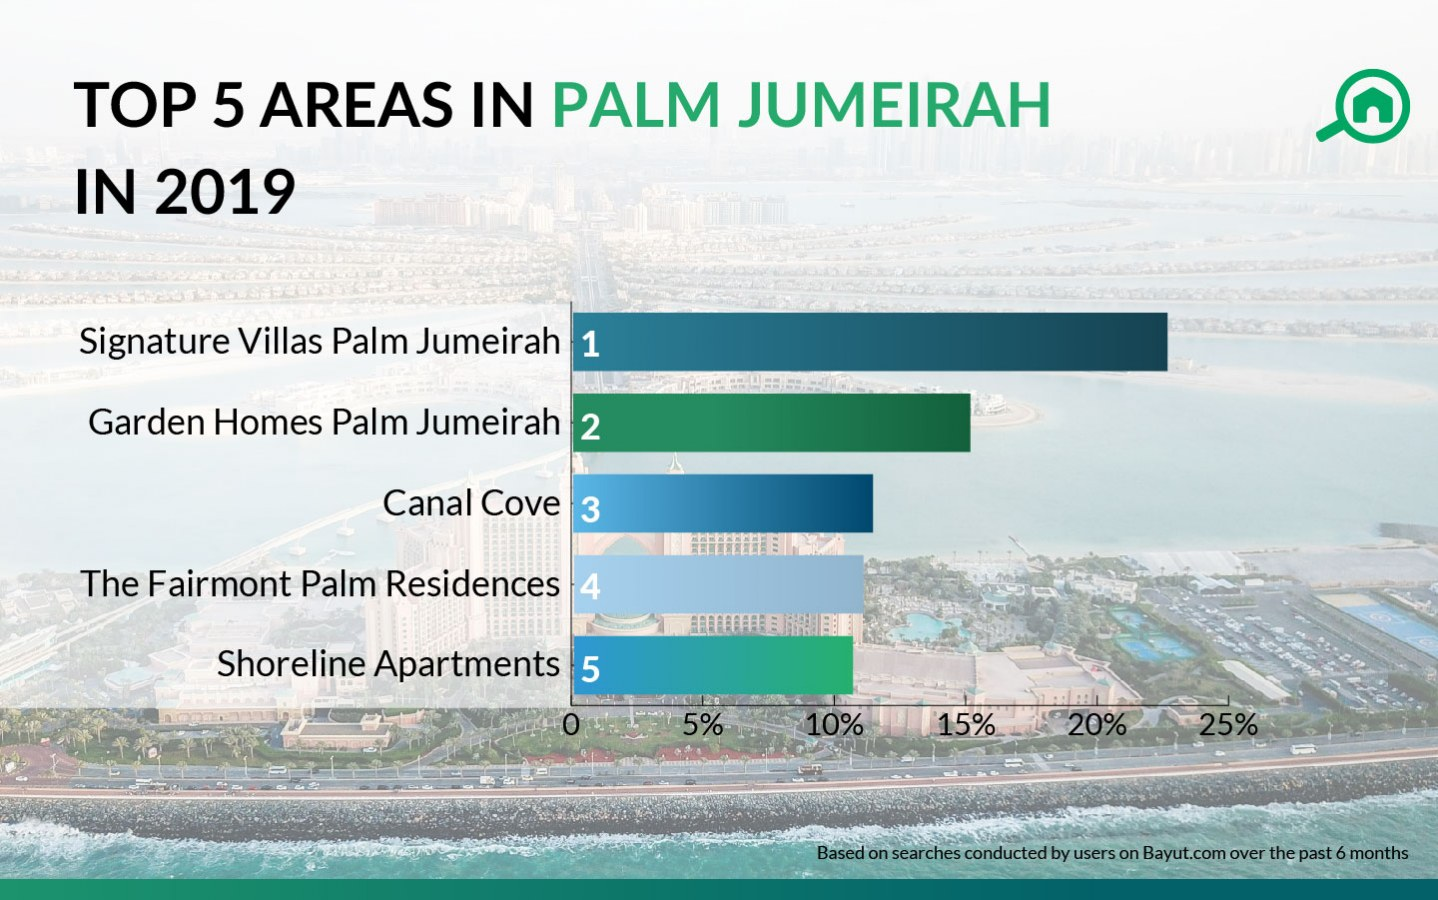 Most popular developments in Palm Jumeirah